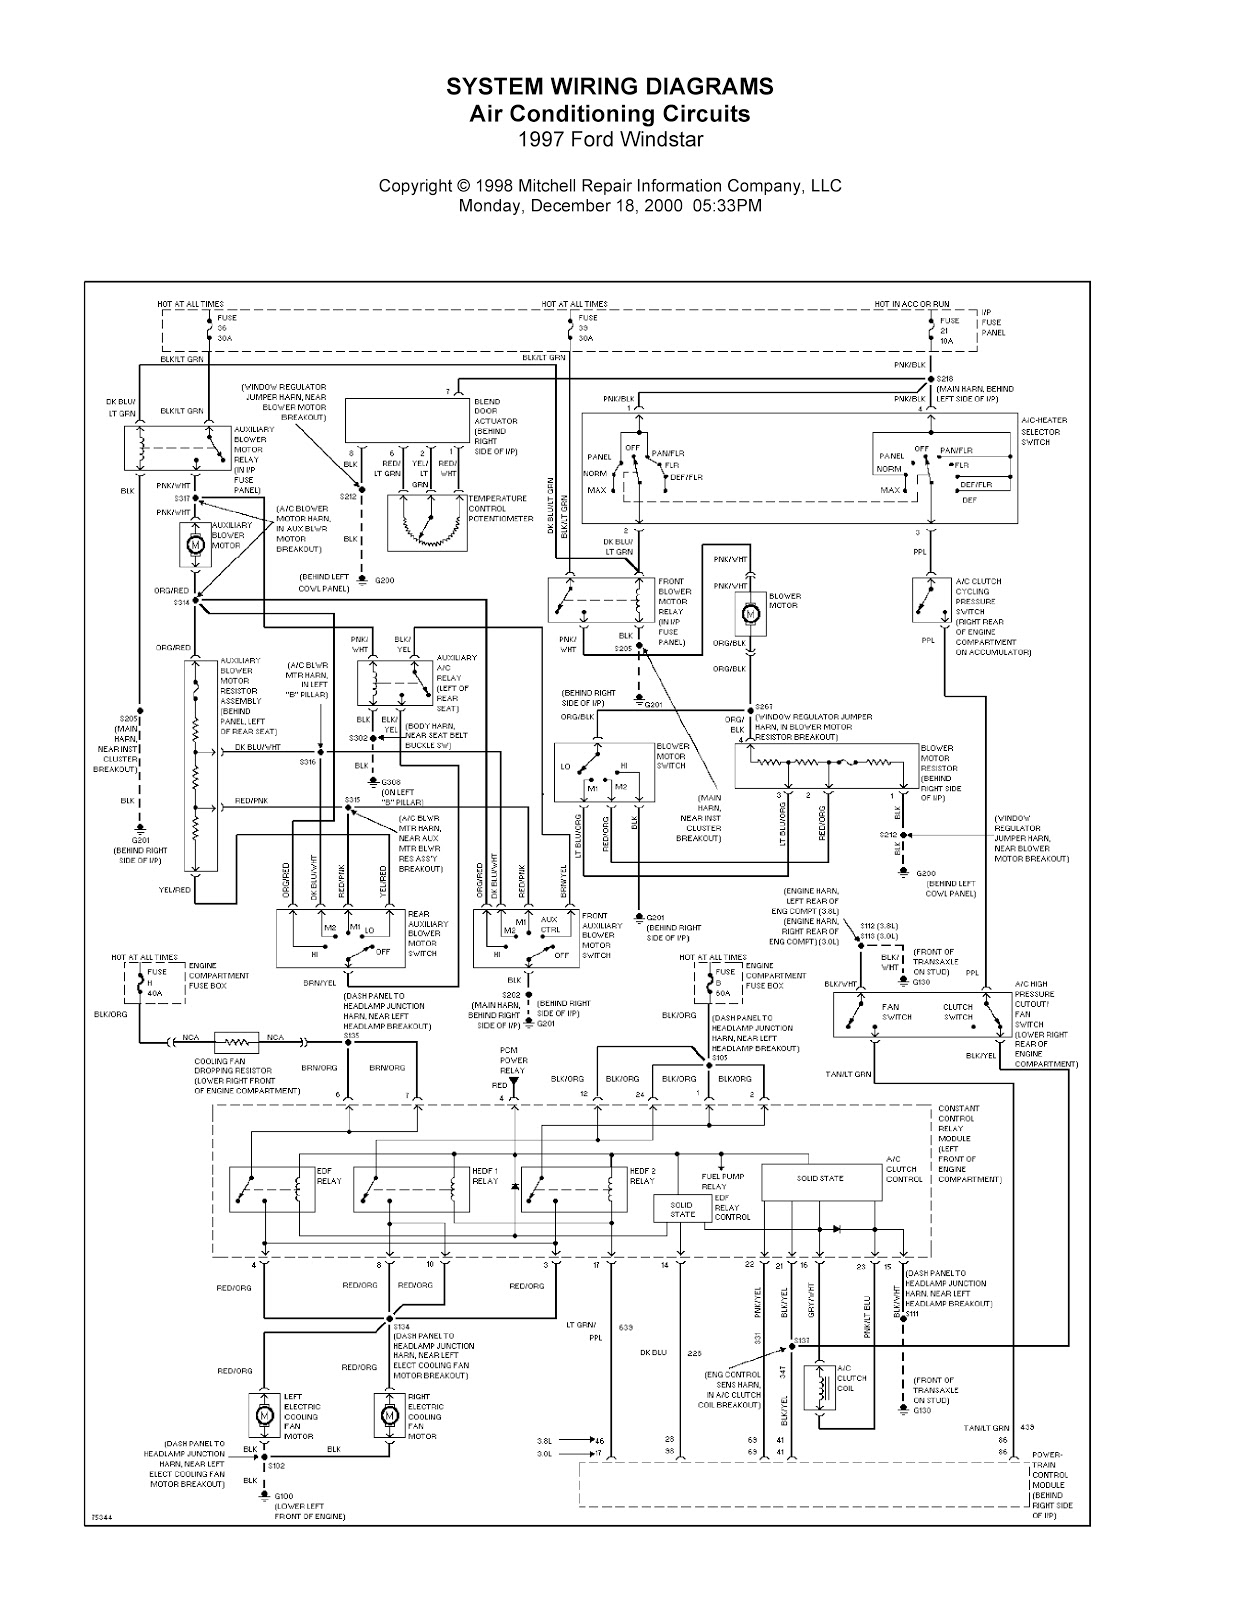 0001 1997 ford windstar complete system wiring diagrams wiring ford f650 wiring diagram at nearapp.co